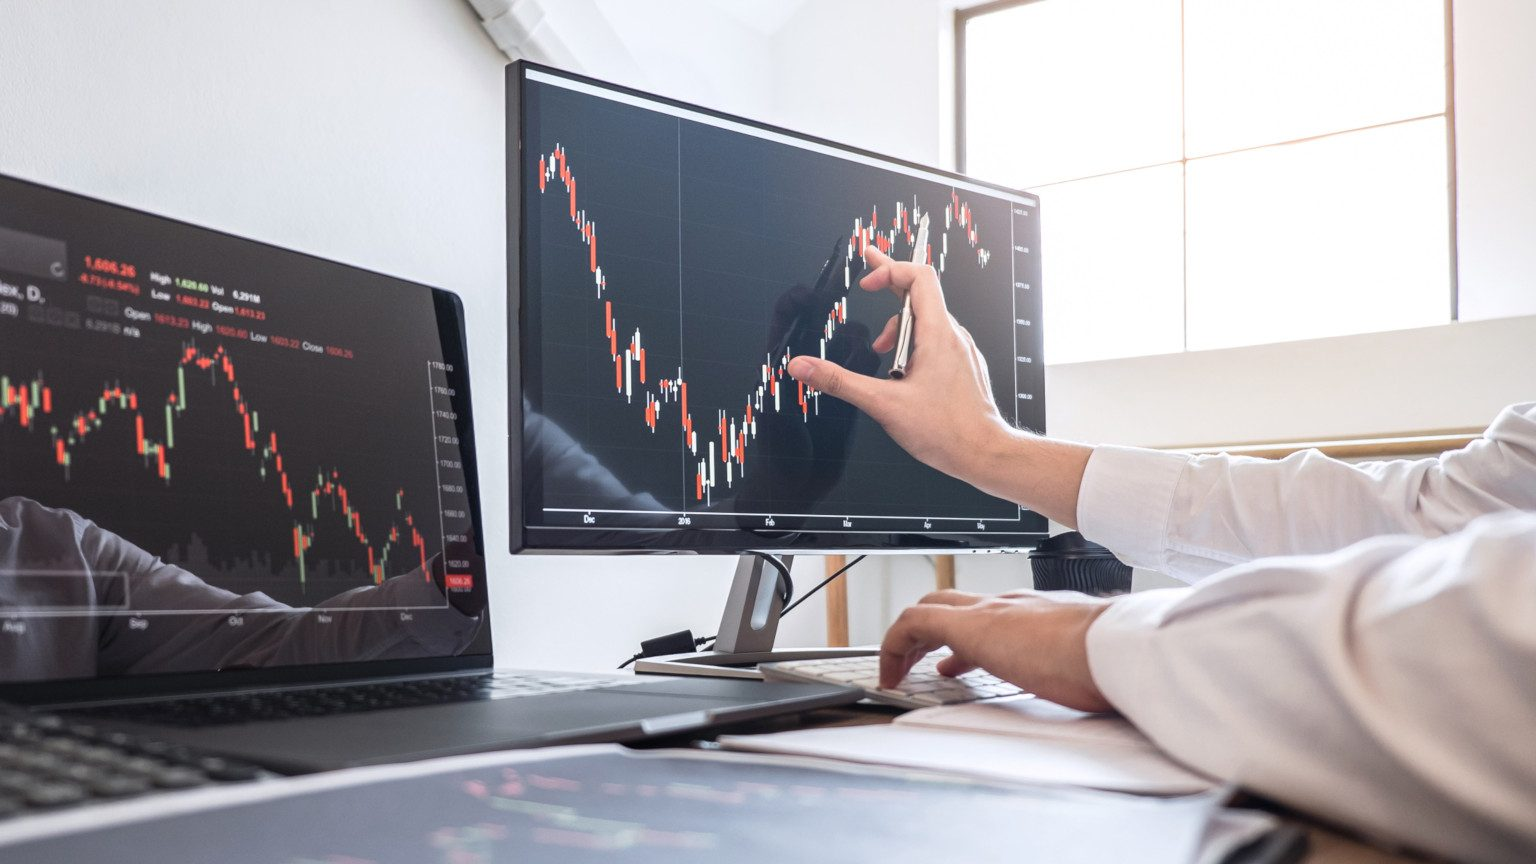 Person's hands analyzing the stock market on two computer screens